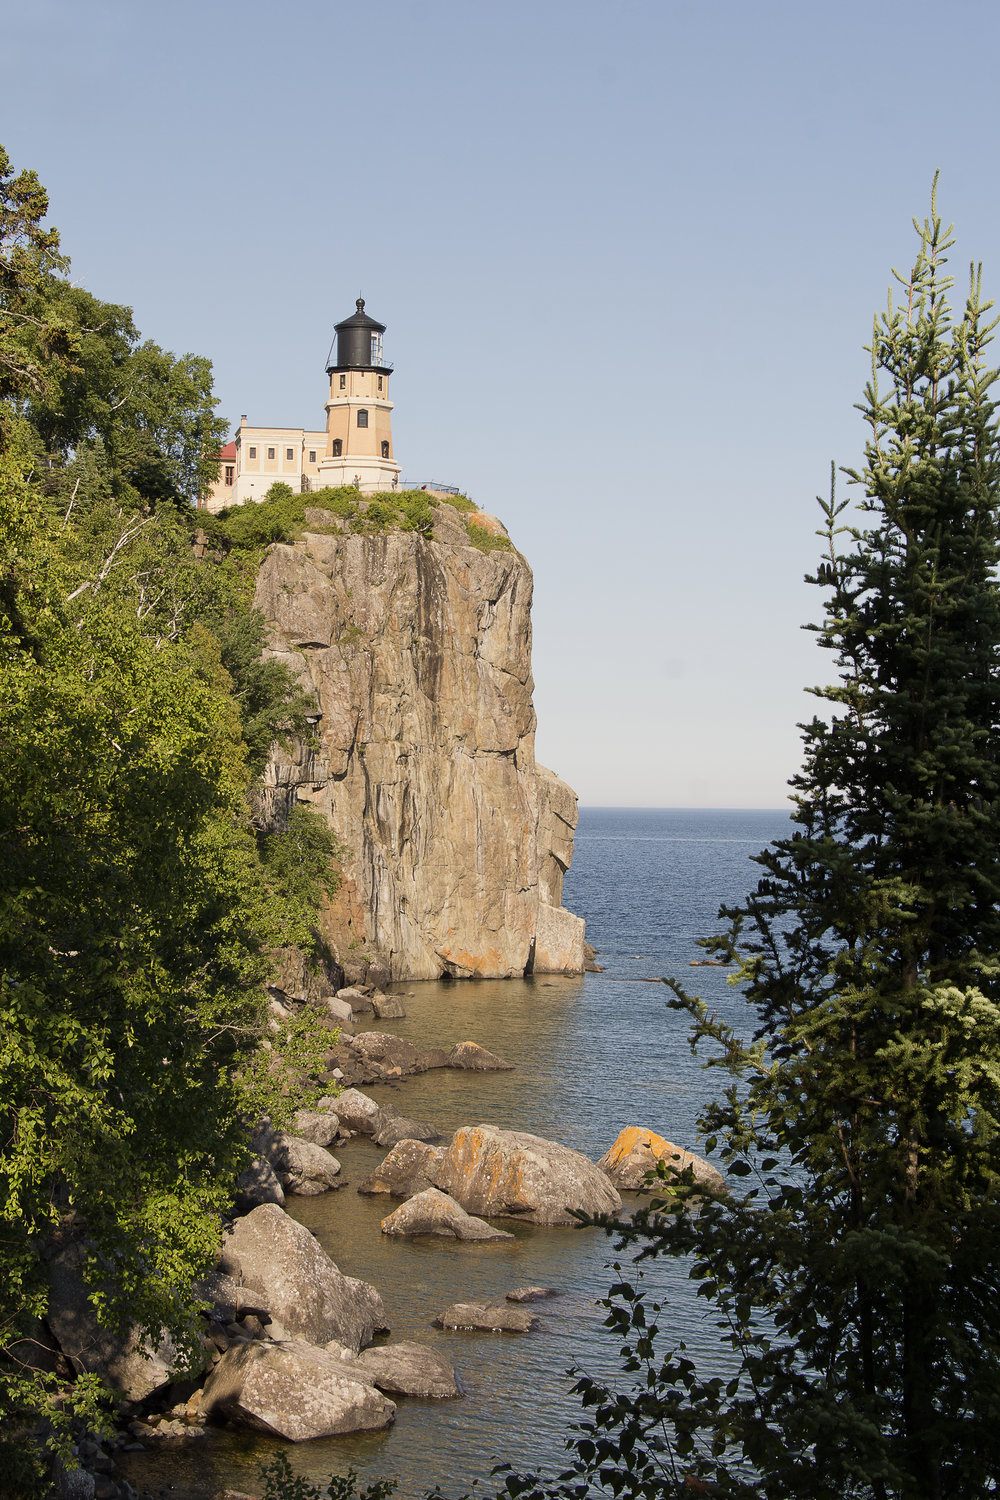 Exceptionnel The Light Station Was Active For Nearly 60 Years. Today, The Split Rock  Lighthouse Is A National Historic Landmark And A Minnesota State Historic  Site.